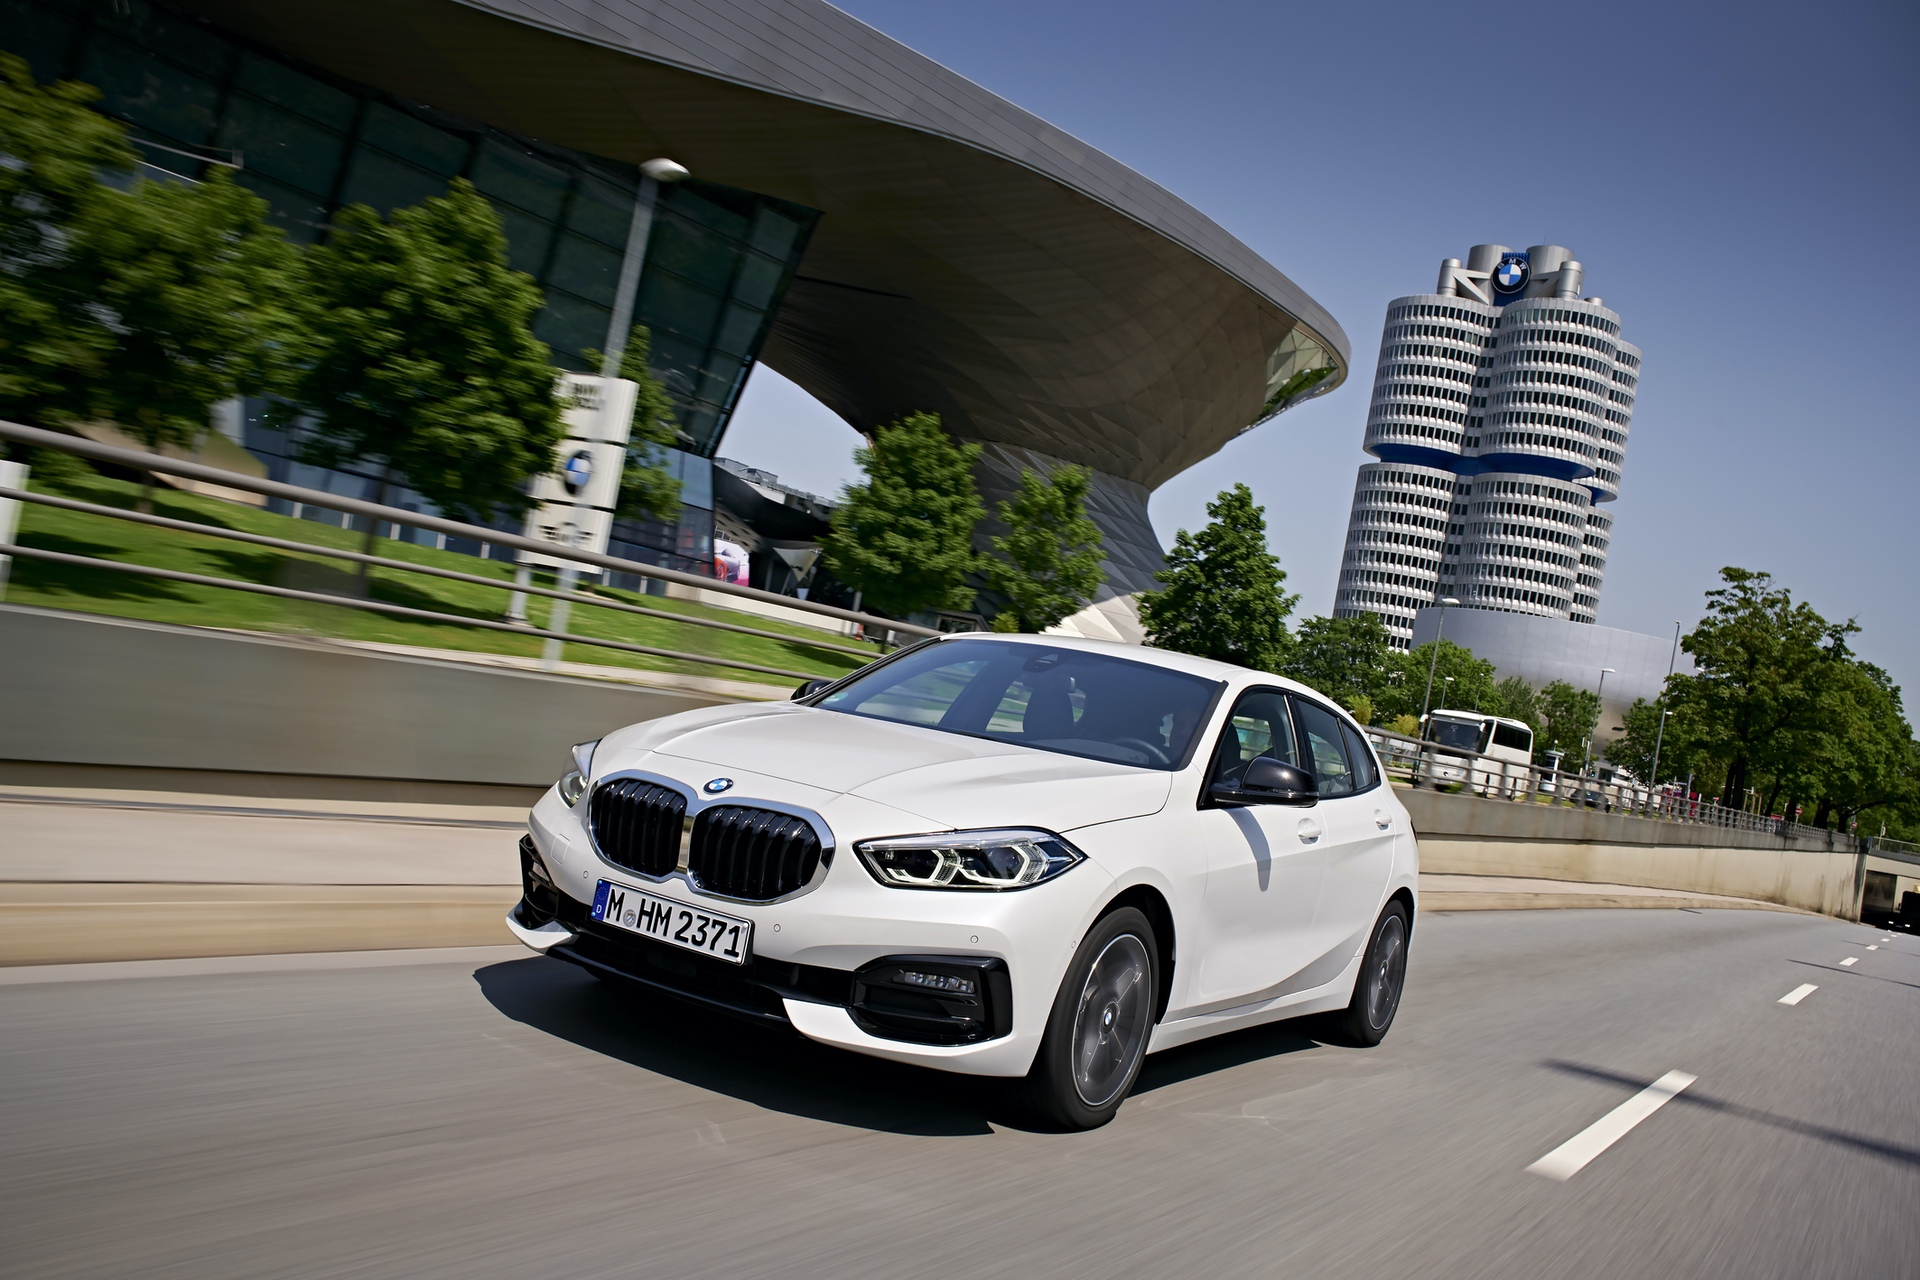 2019 BMW 118d xDrive test drive 24